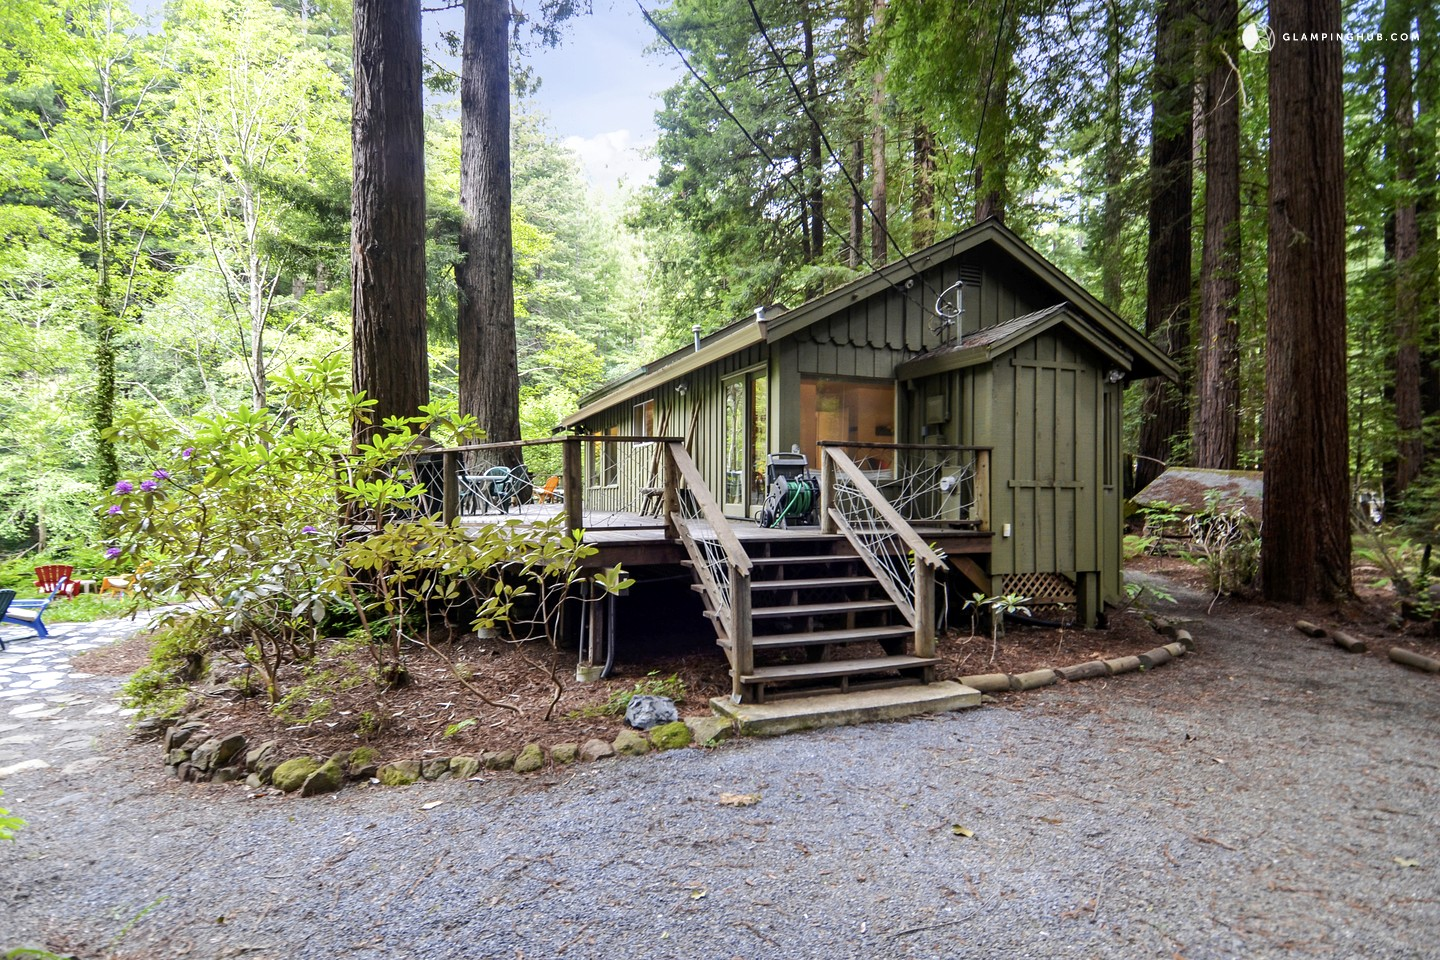 cabin rental near the armstrong redwoods state park in